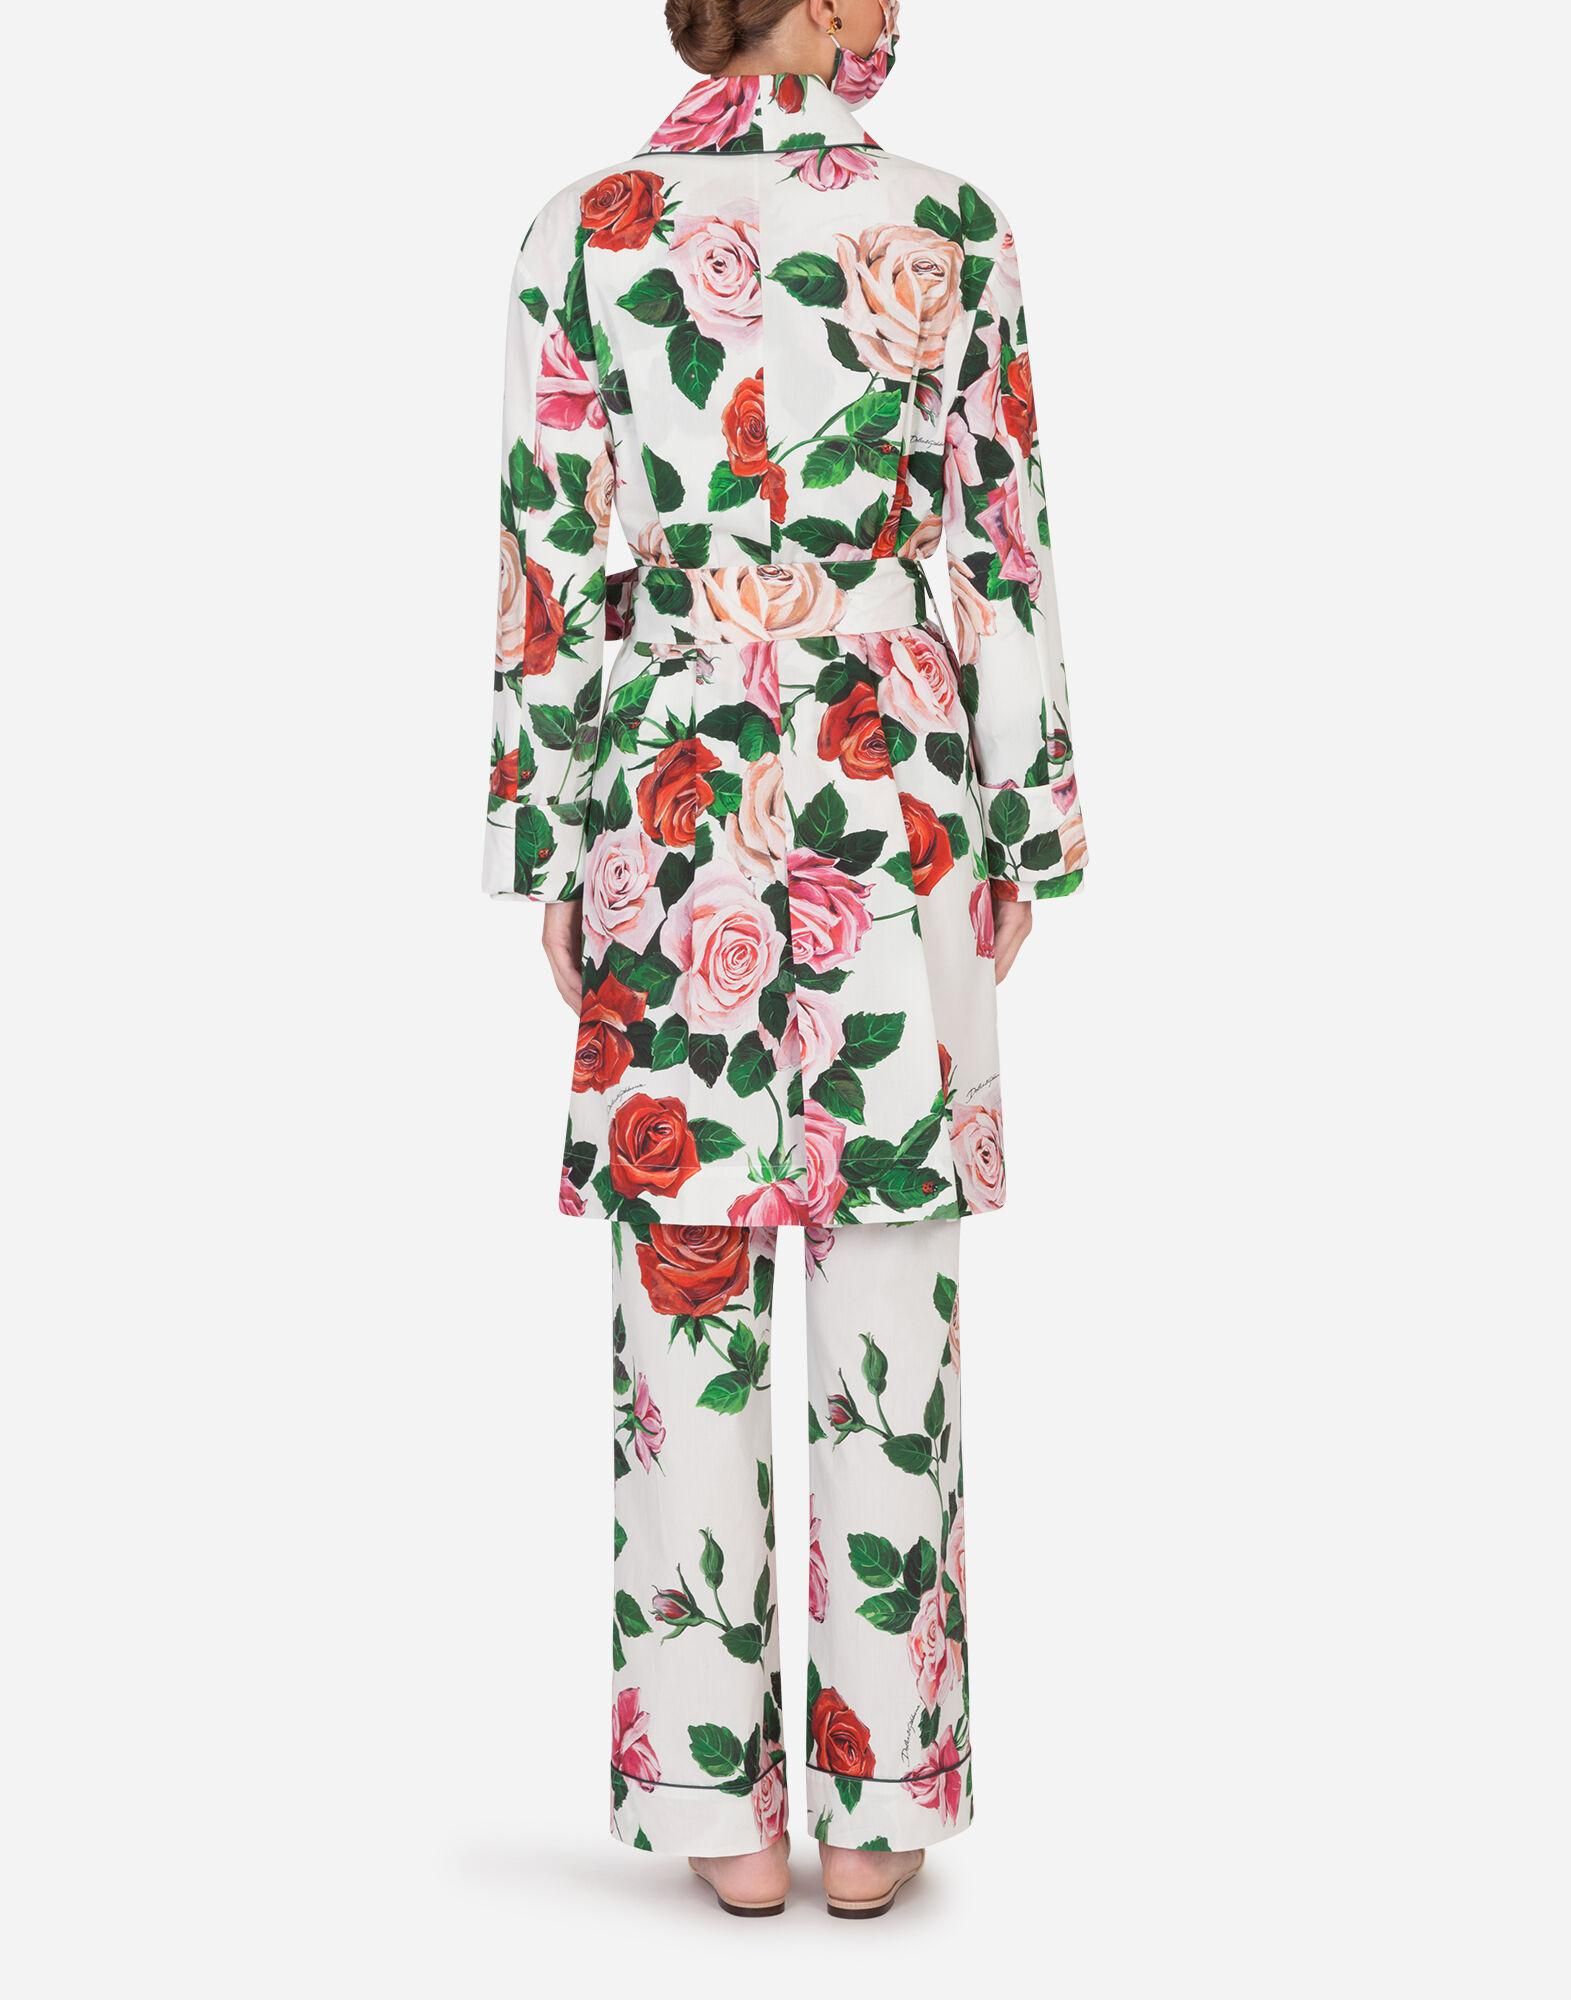 Rose-print robe with matching face mask 1